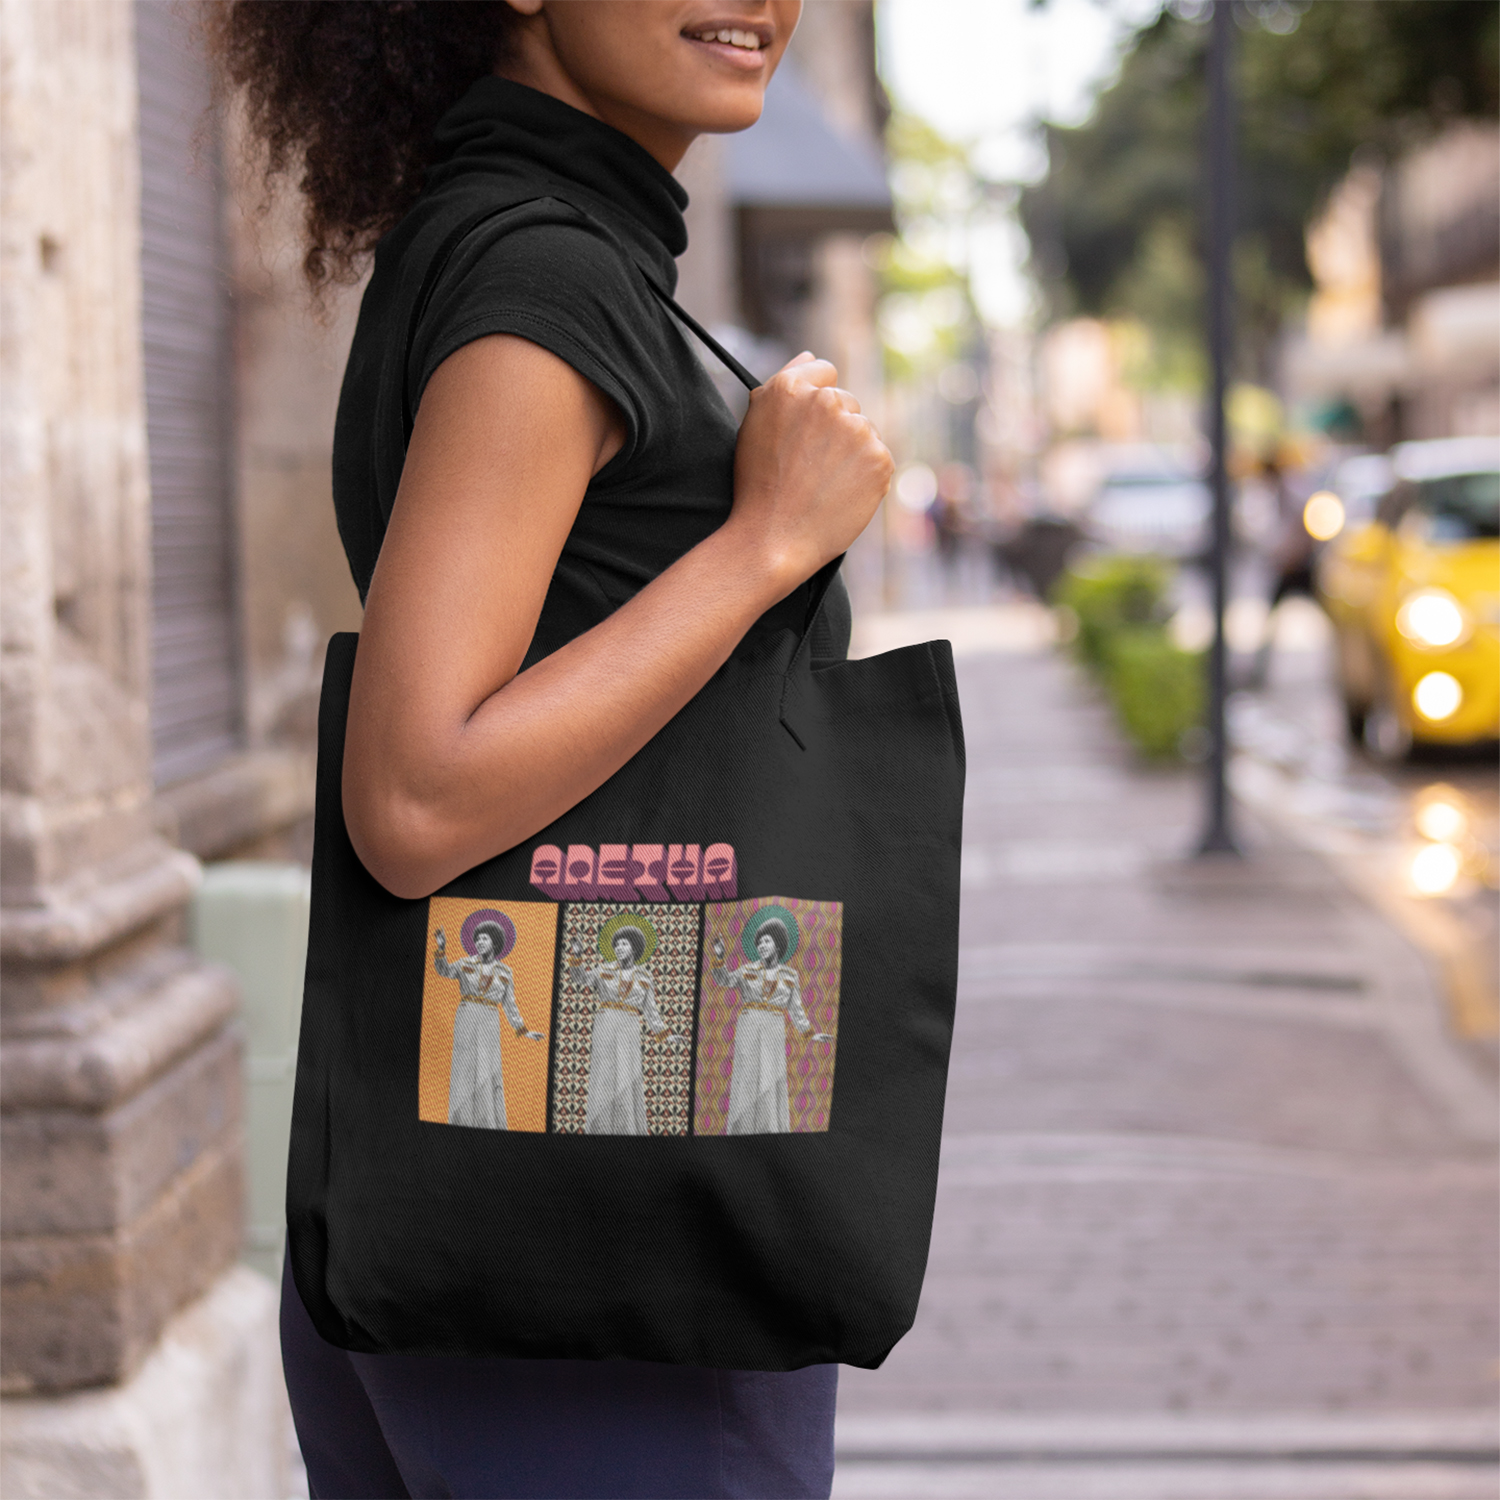 Aretha Cover Triptych Tote Bag